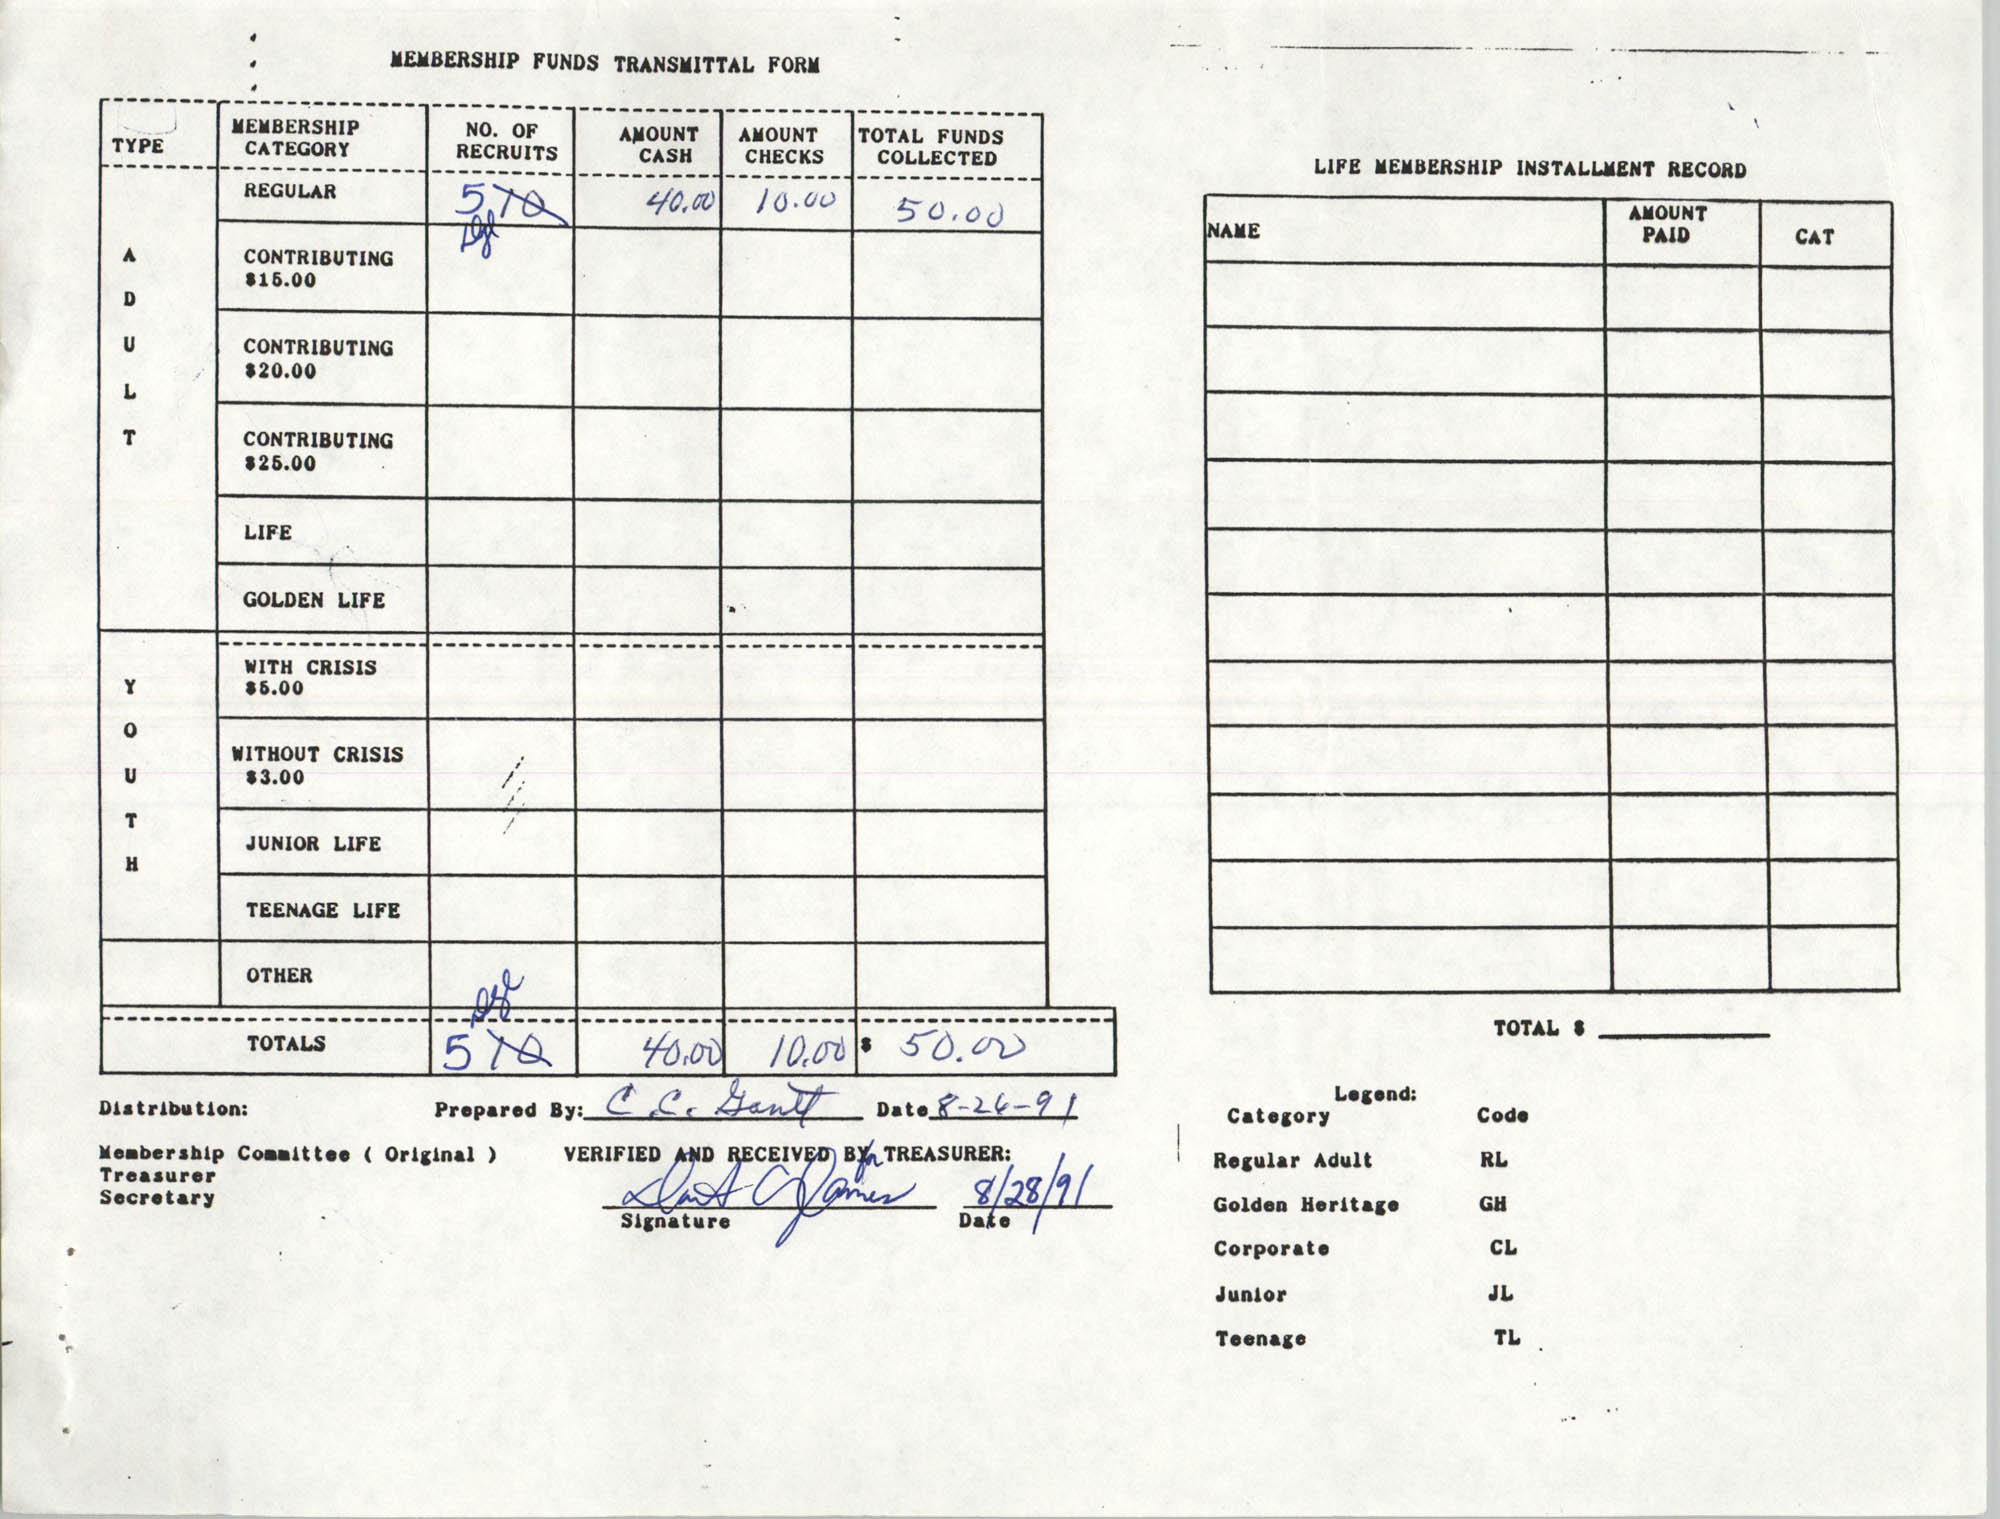 Charleston Branch of the NAACP Funds Transmittal Forms, August 1991, Page 37